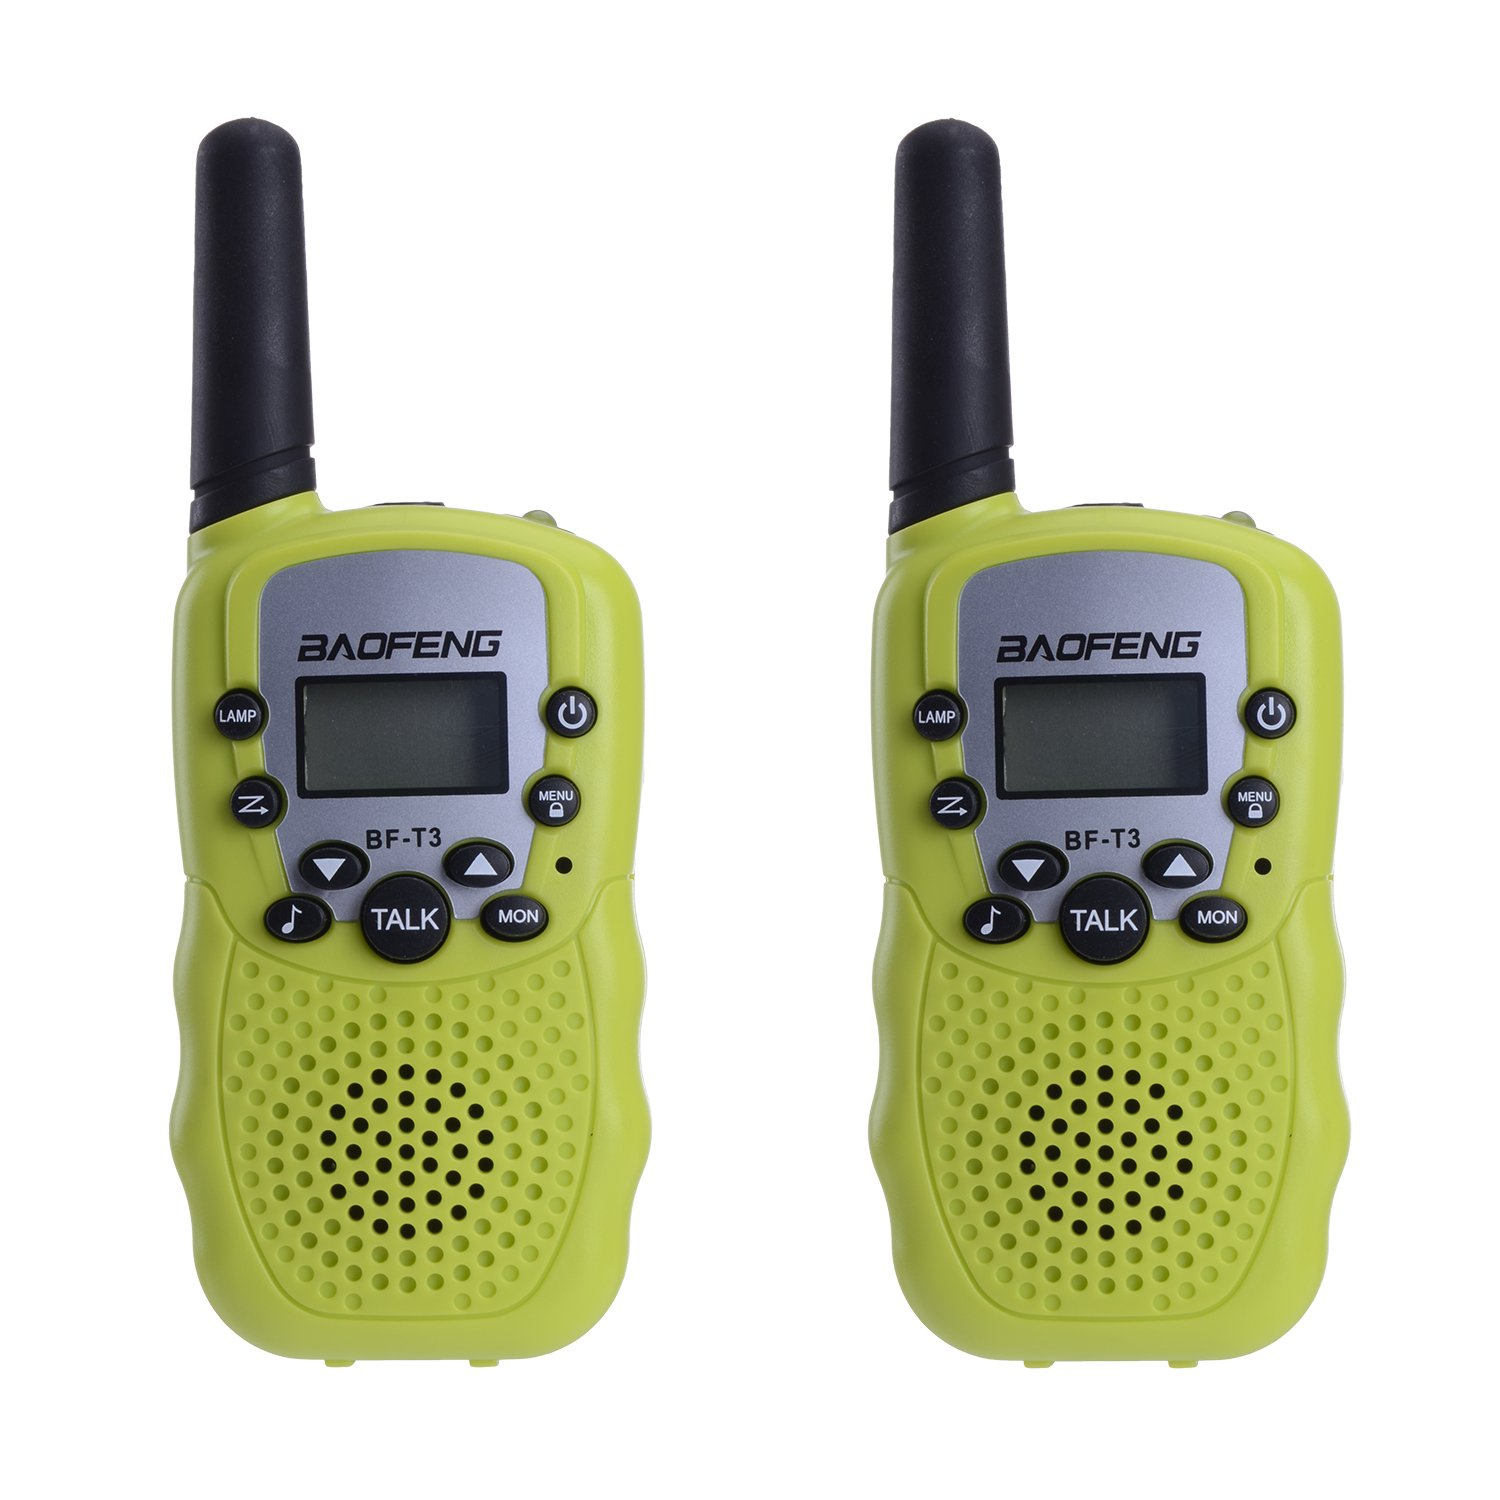 BYBOO Baofeng T3 Kids Walkie Talkies Toys Mini Two Way Radios Xmas Birthday Gift for Boys Girls Children UHF 462-467MHz Frquency 22 Channels - 1 Pair Green